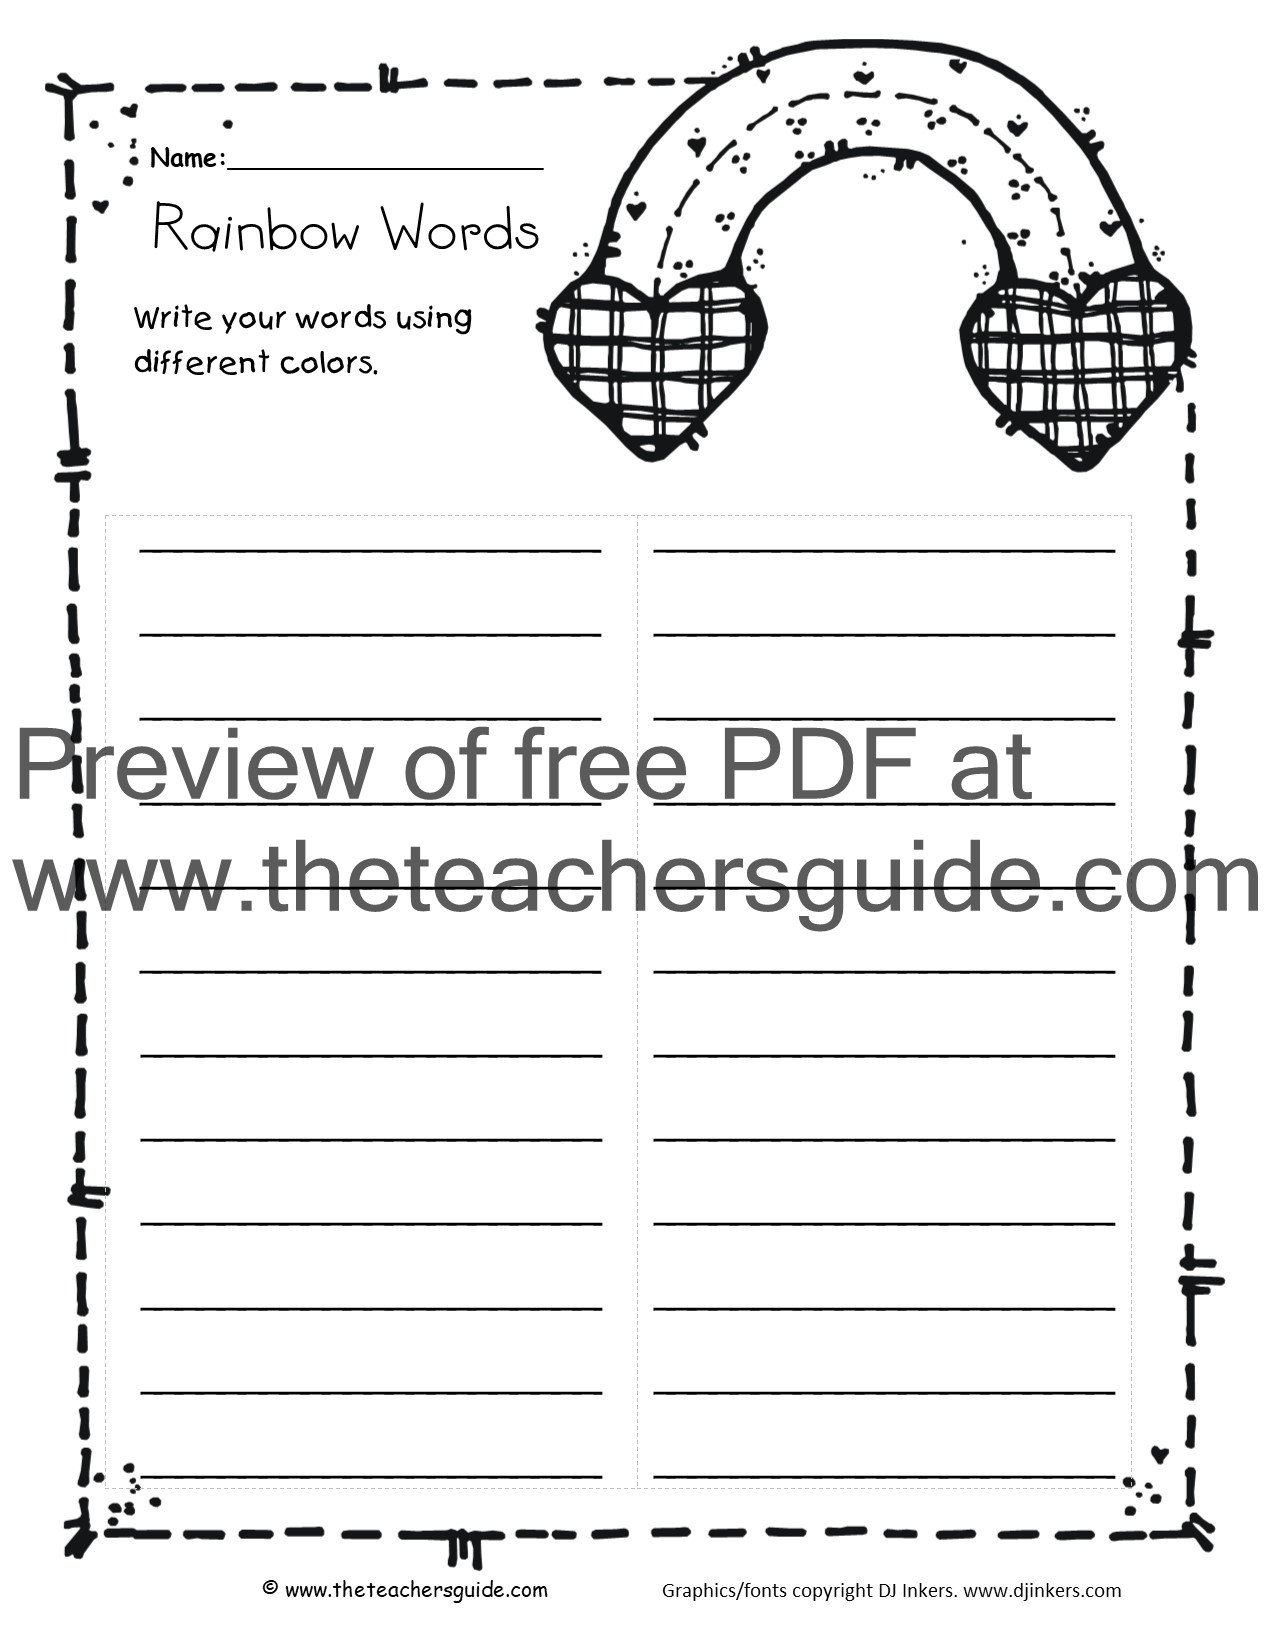 Summary Worksheets 2nd Grade the Teacher S Guide Free Lesson Plans Printouts and